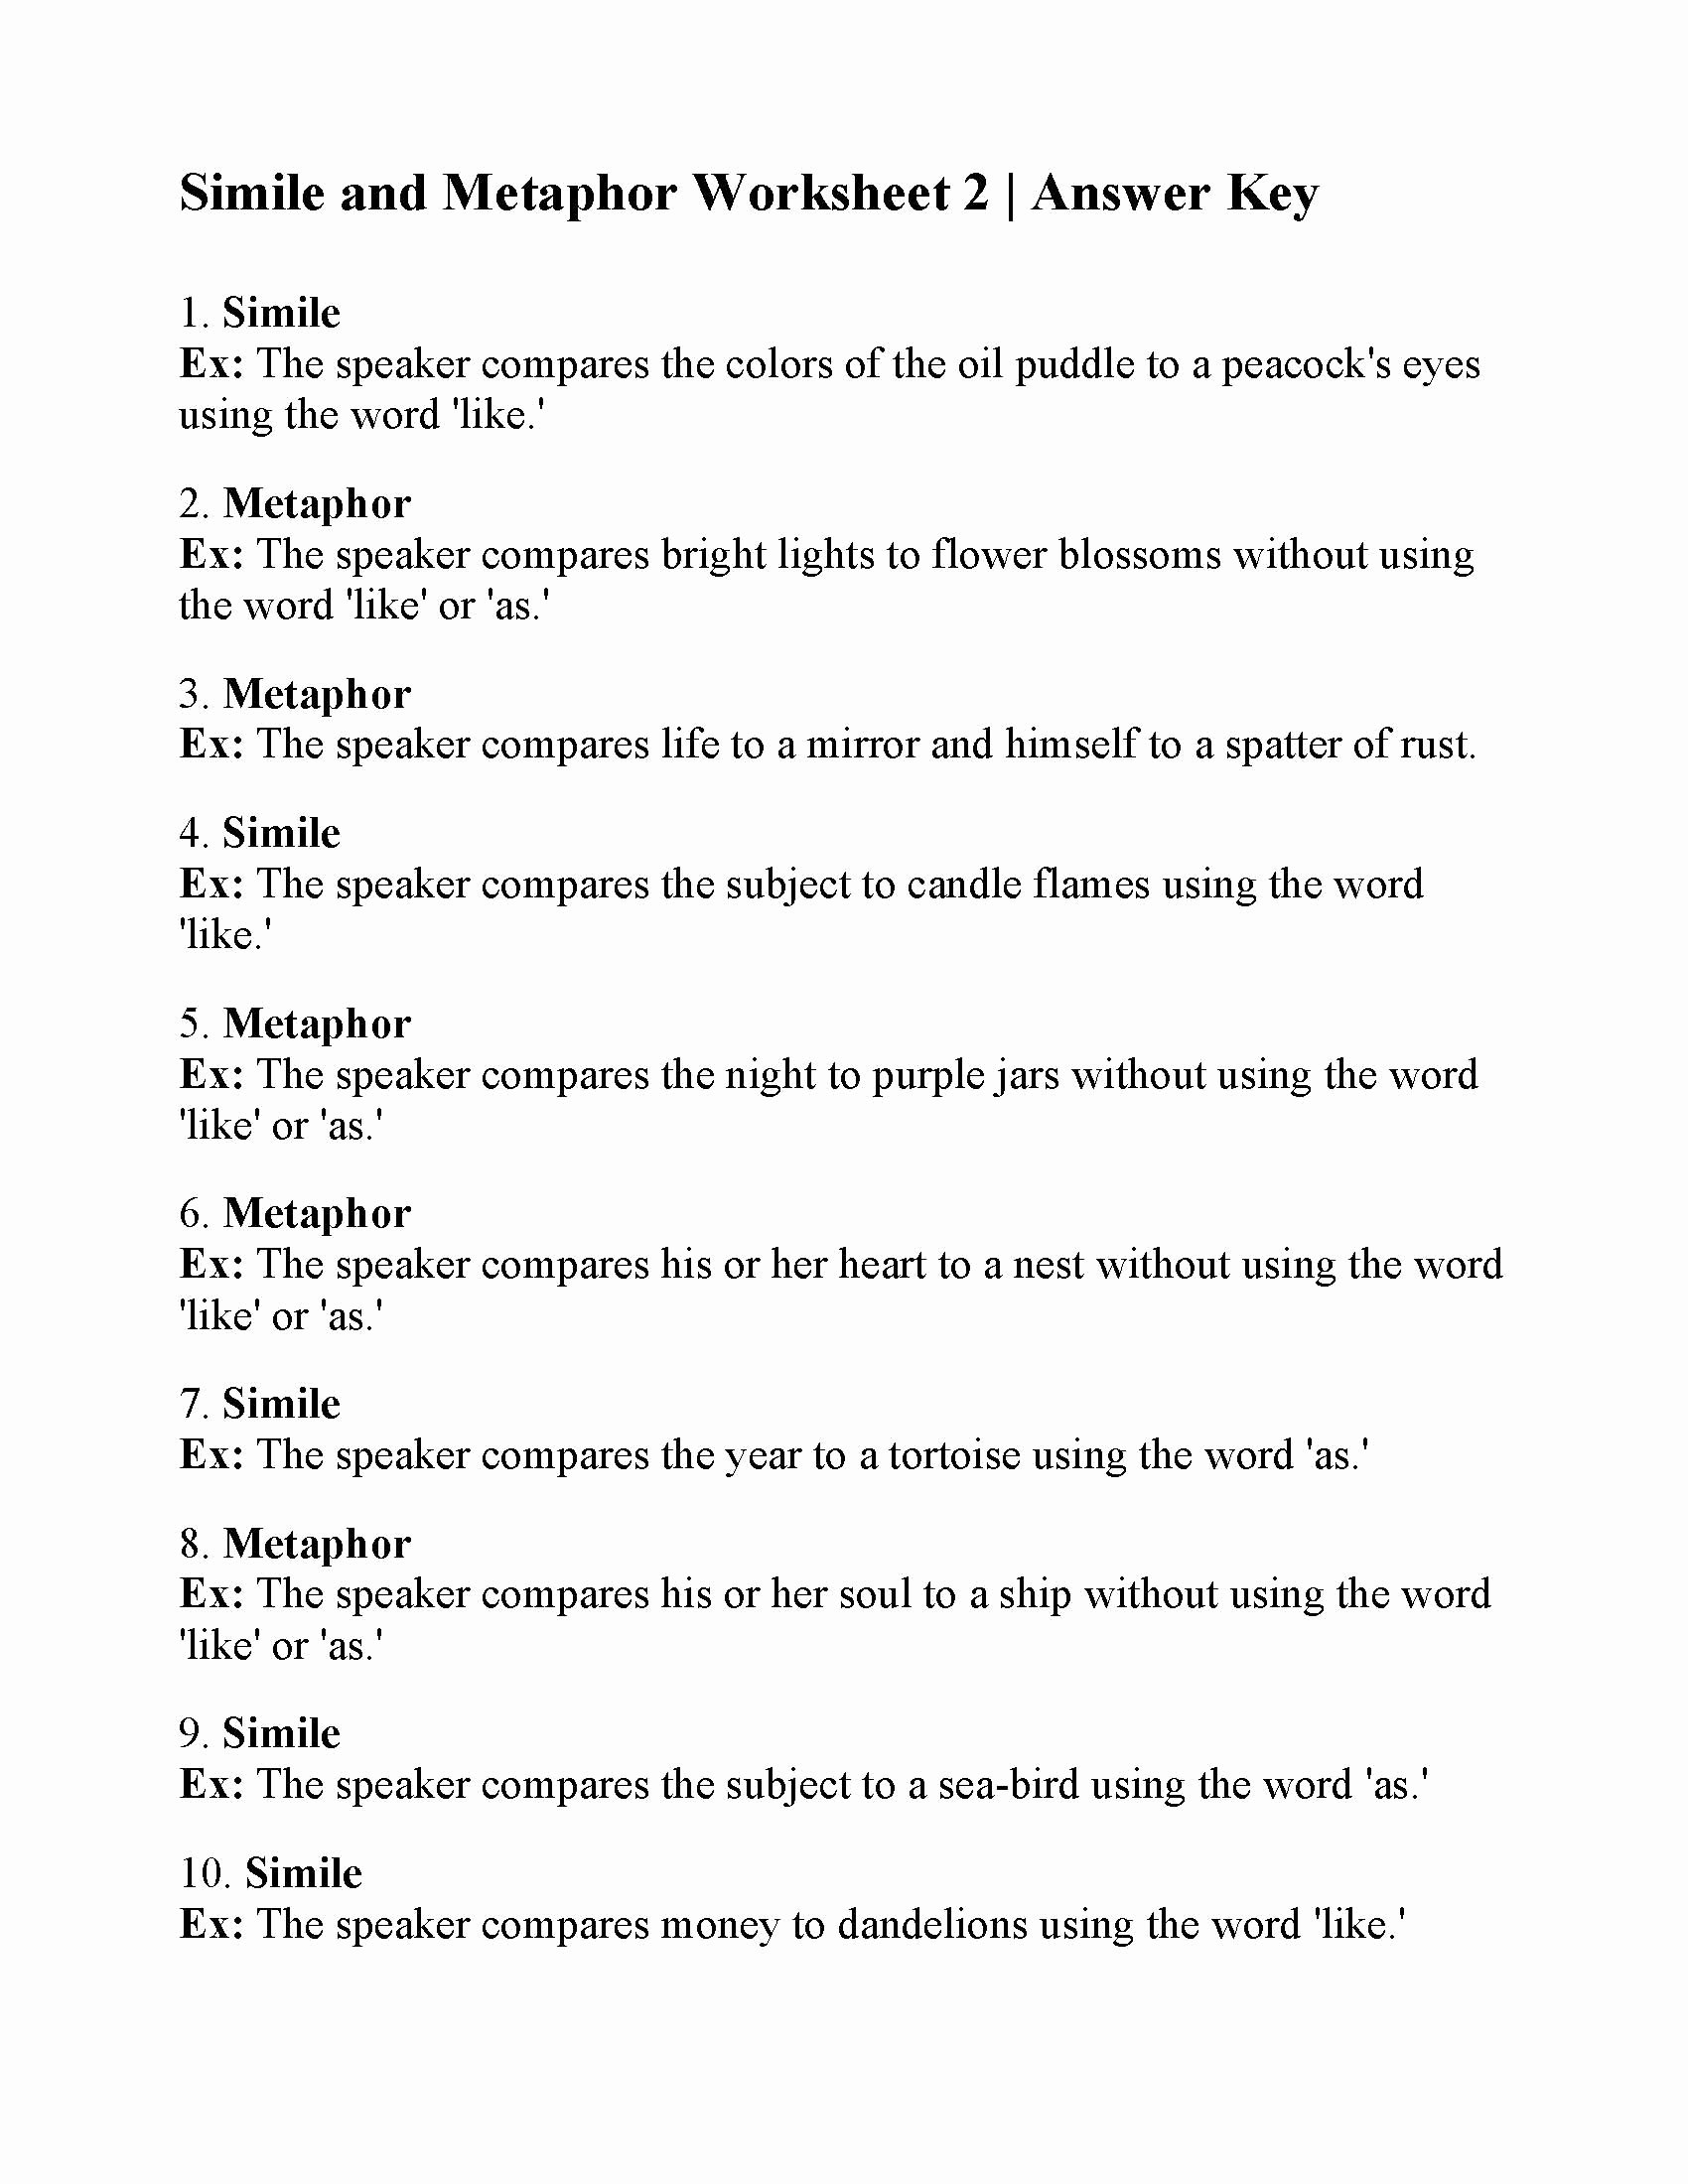 Similes and Metaphors Worksheet Awesome Simile and Metaphor Worksheet 2